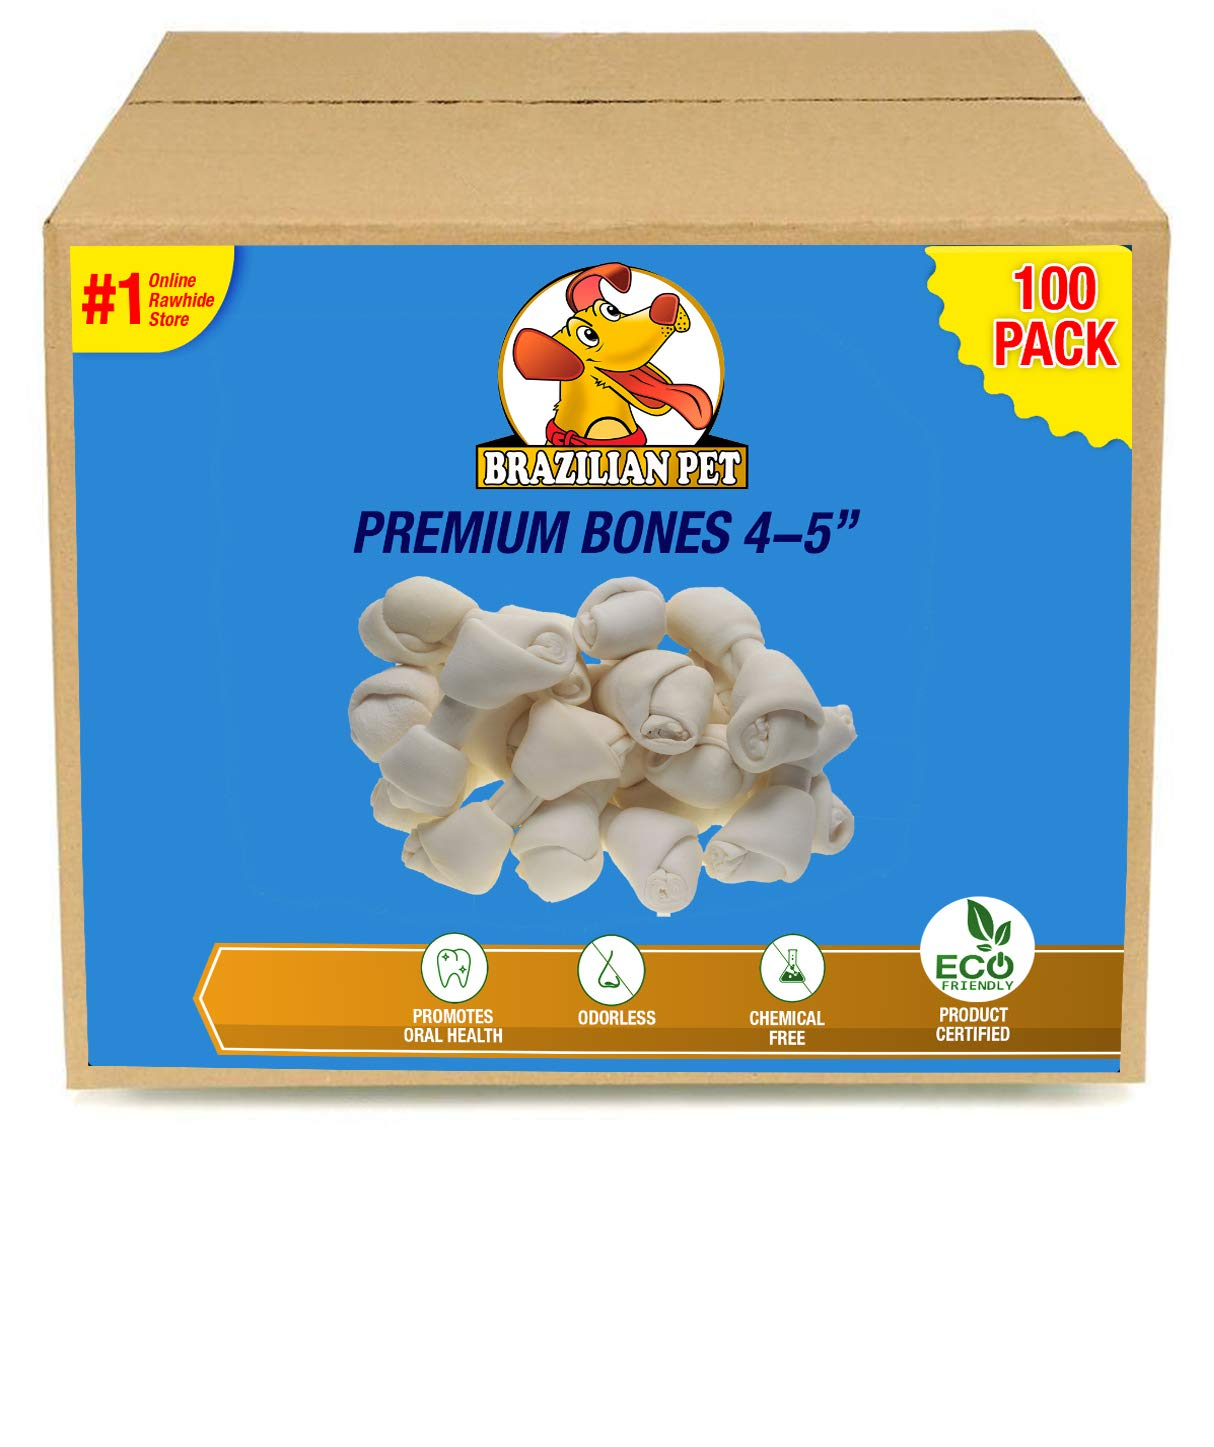 4-5 Inch Premium Dog Bones -Chewing Dog Treat Made with The Best Rawhide 100% Natural - No Additives, Chemicals or Hormones - Natural Grass Fed in South America by Brazilian Pet